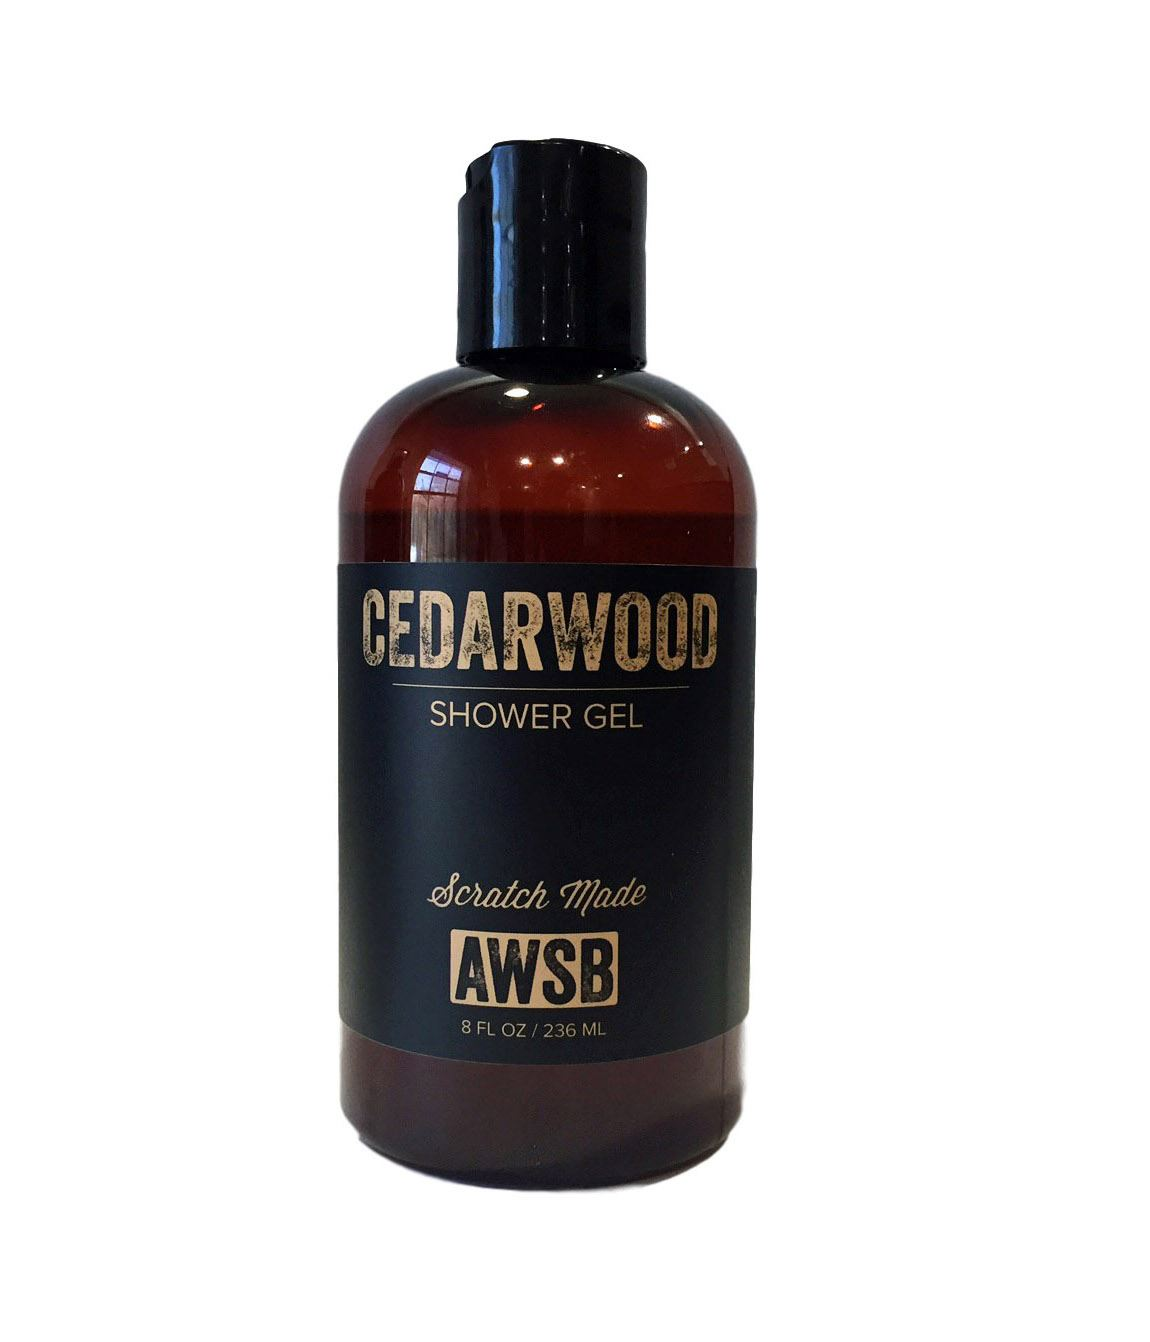 shower gel - cedarwood - NEW! cedarwood,cedar,wood,organic,handmade,shower gel,shower,gel,liquid soap,castile,soap